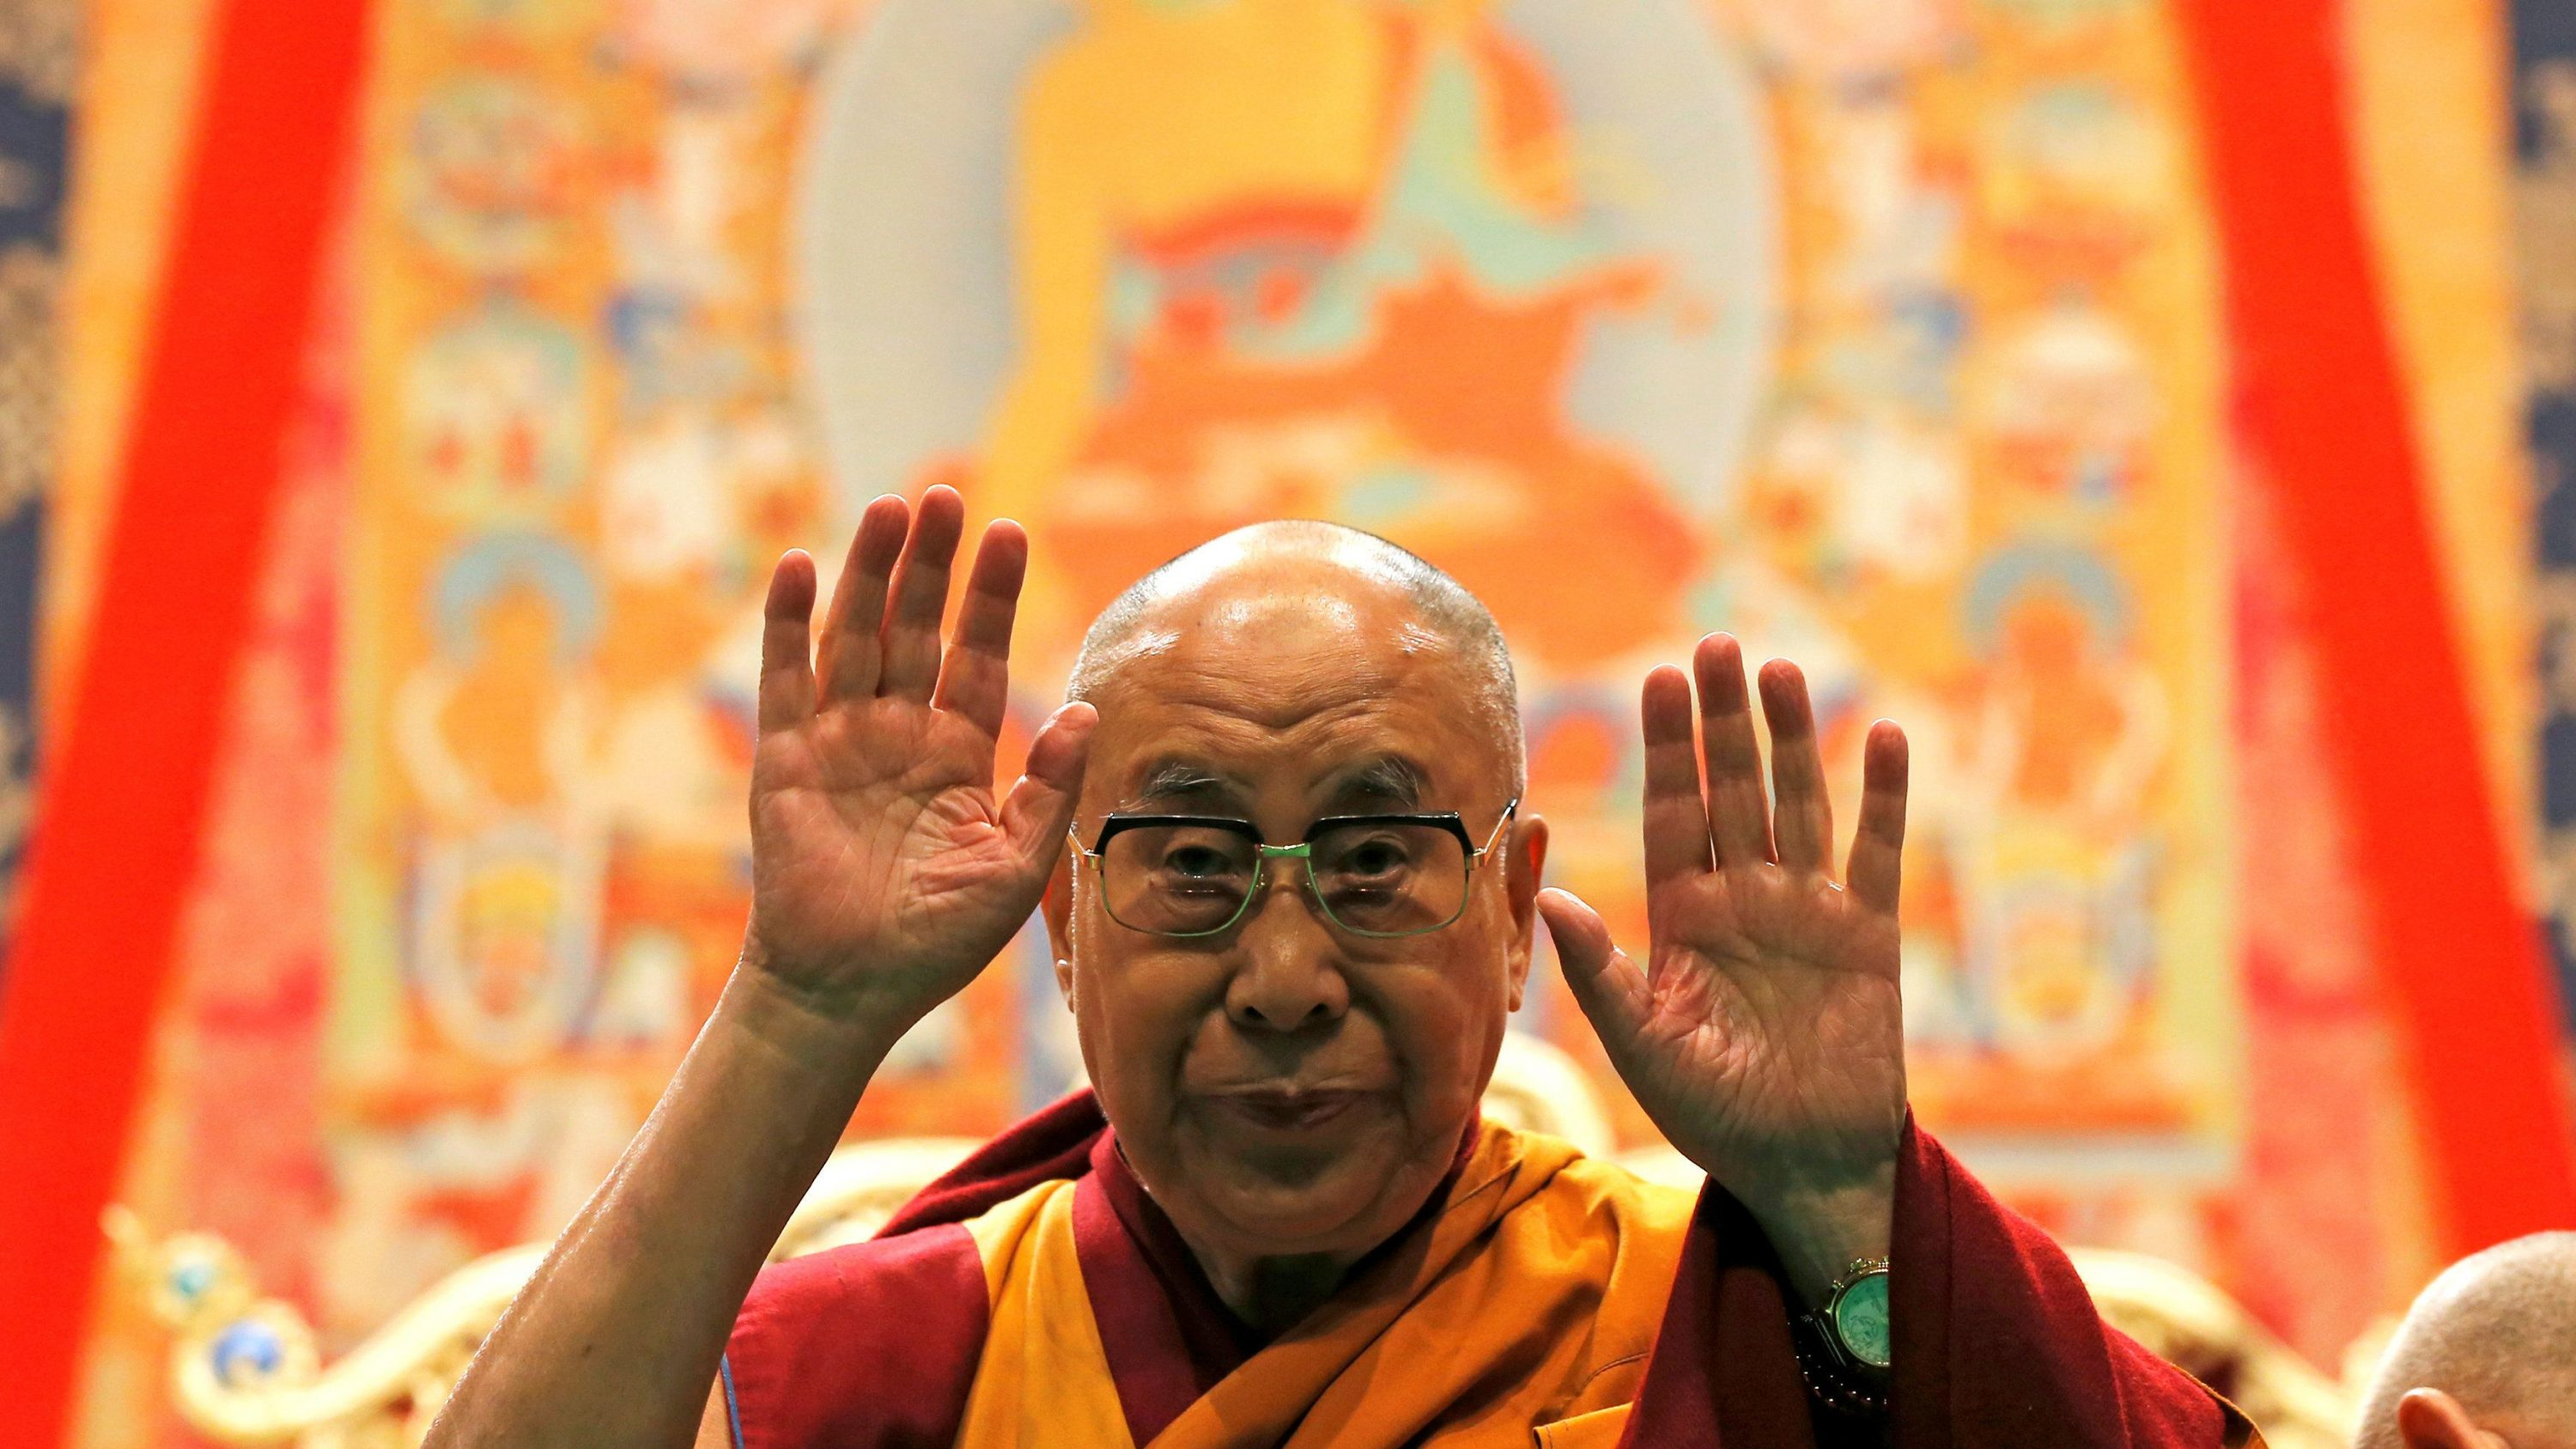 Tibet's exiled spiritual leader the Dalai Lama gestures as he arrives to give a public religious lecture to the faithful in Strasbourg, France, September 17, 2016.